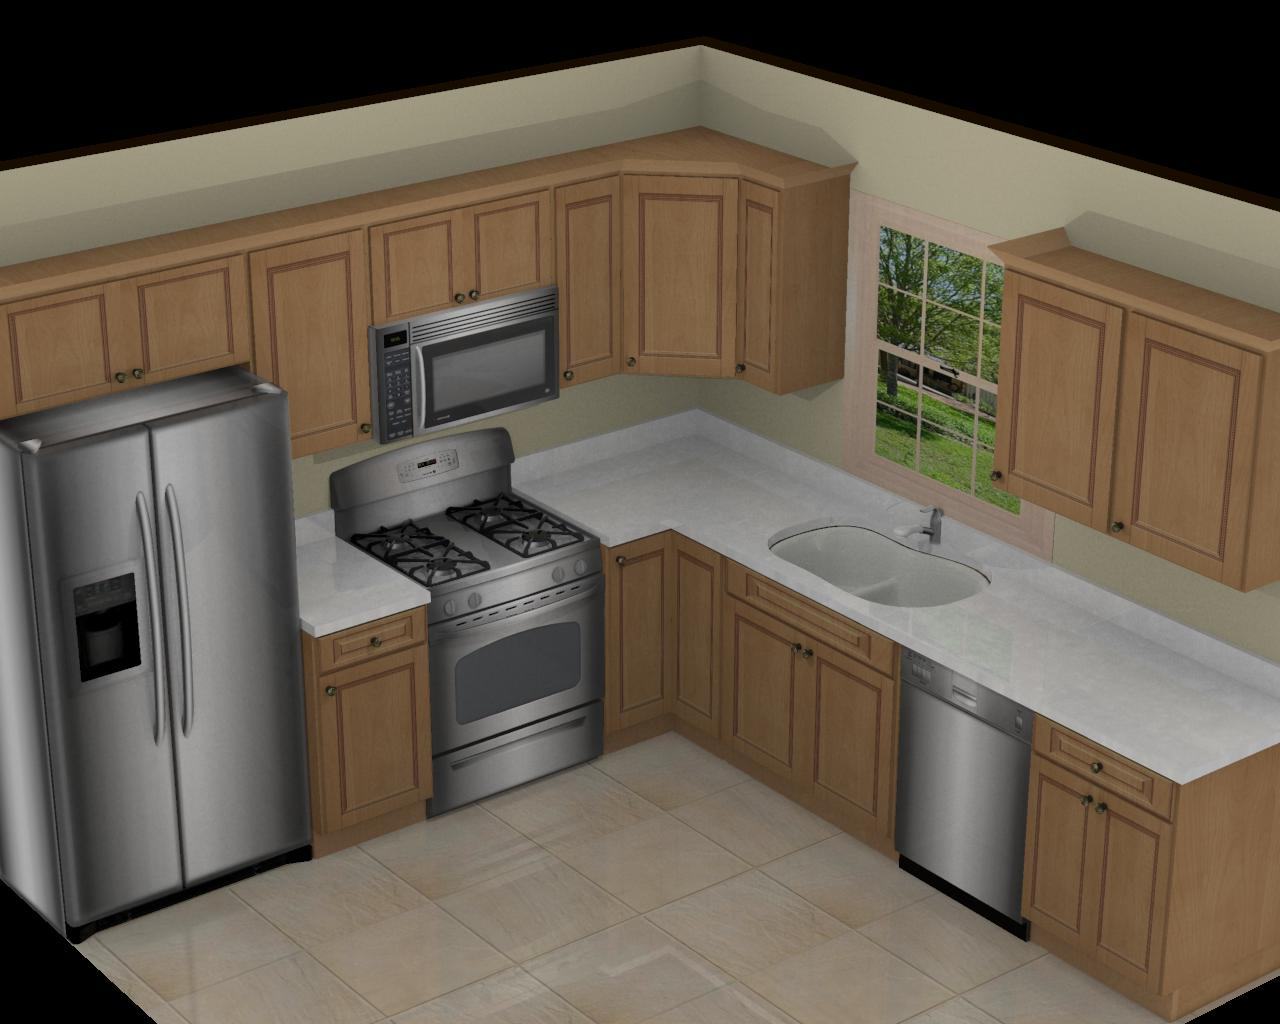 Ideas for kitchen remodeling floor plans roy home design for Remodeling kitchen ideas